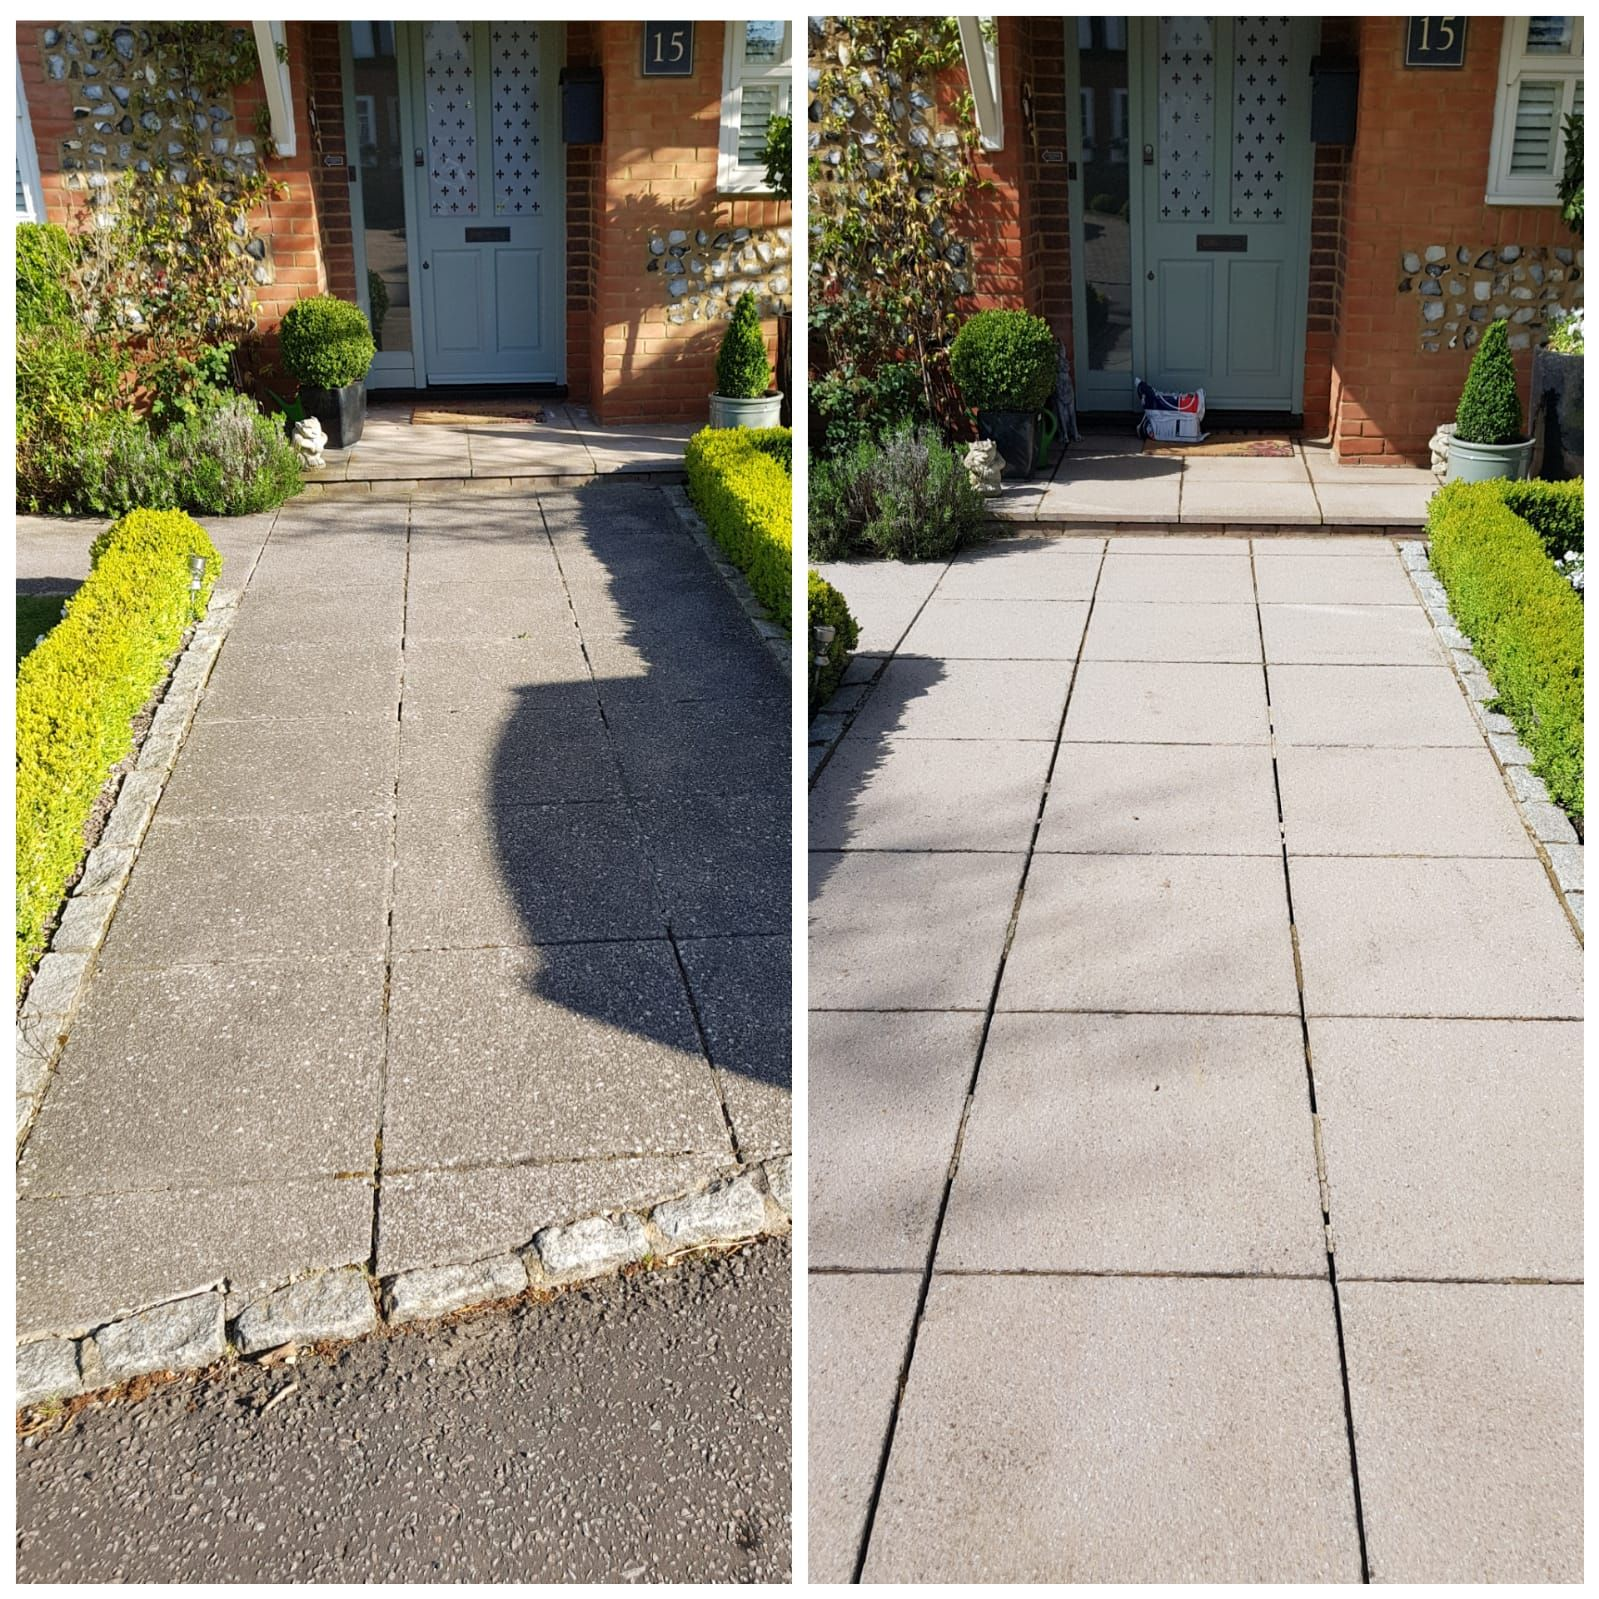 When You Transform Your Driveway You Transform Your Home You Only Get One Chance To Make A First Impression So When People Are Walking Up To Garden Landscaping Sidewalk Get One